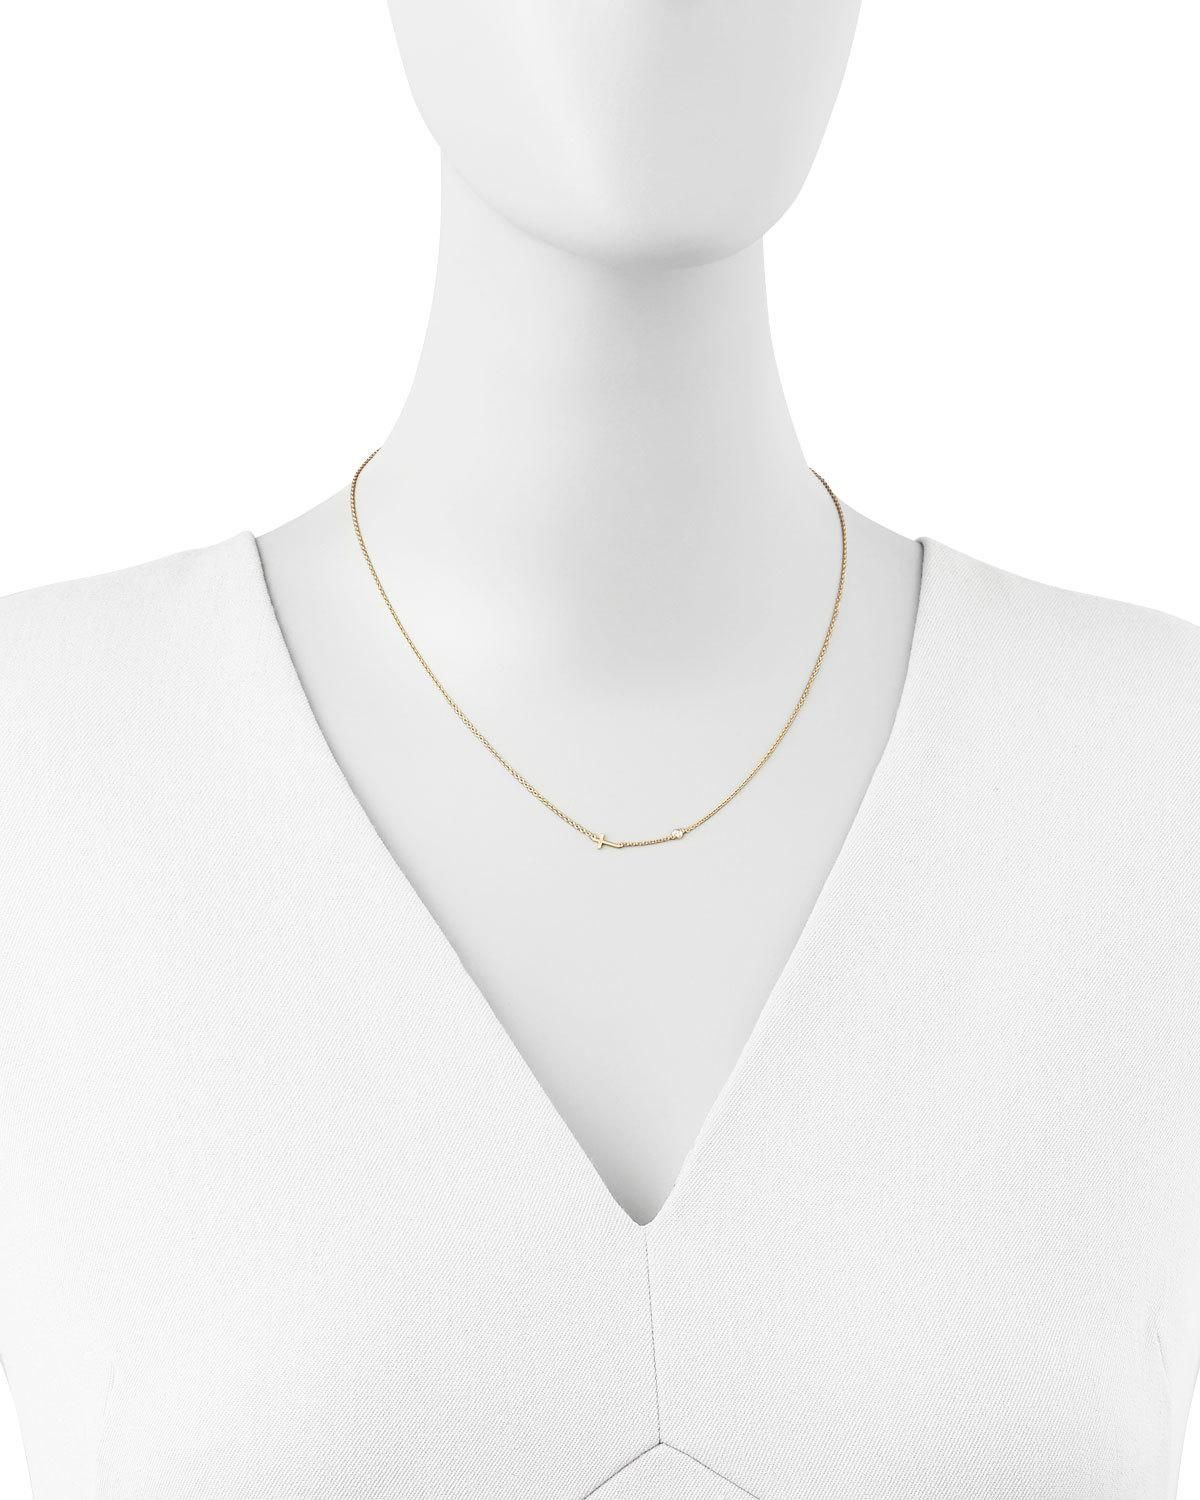 Shy by se cross u singlediamond necklace